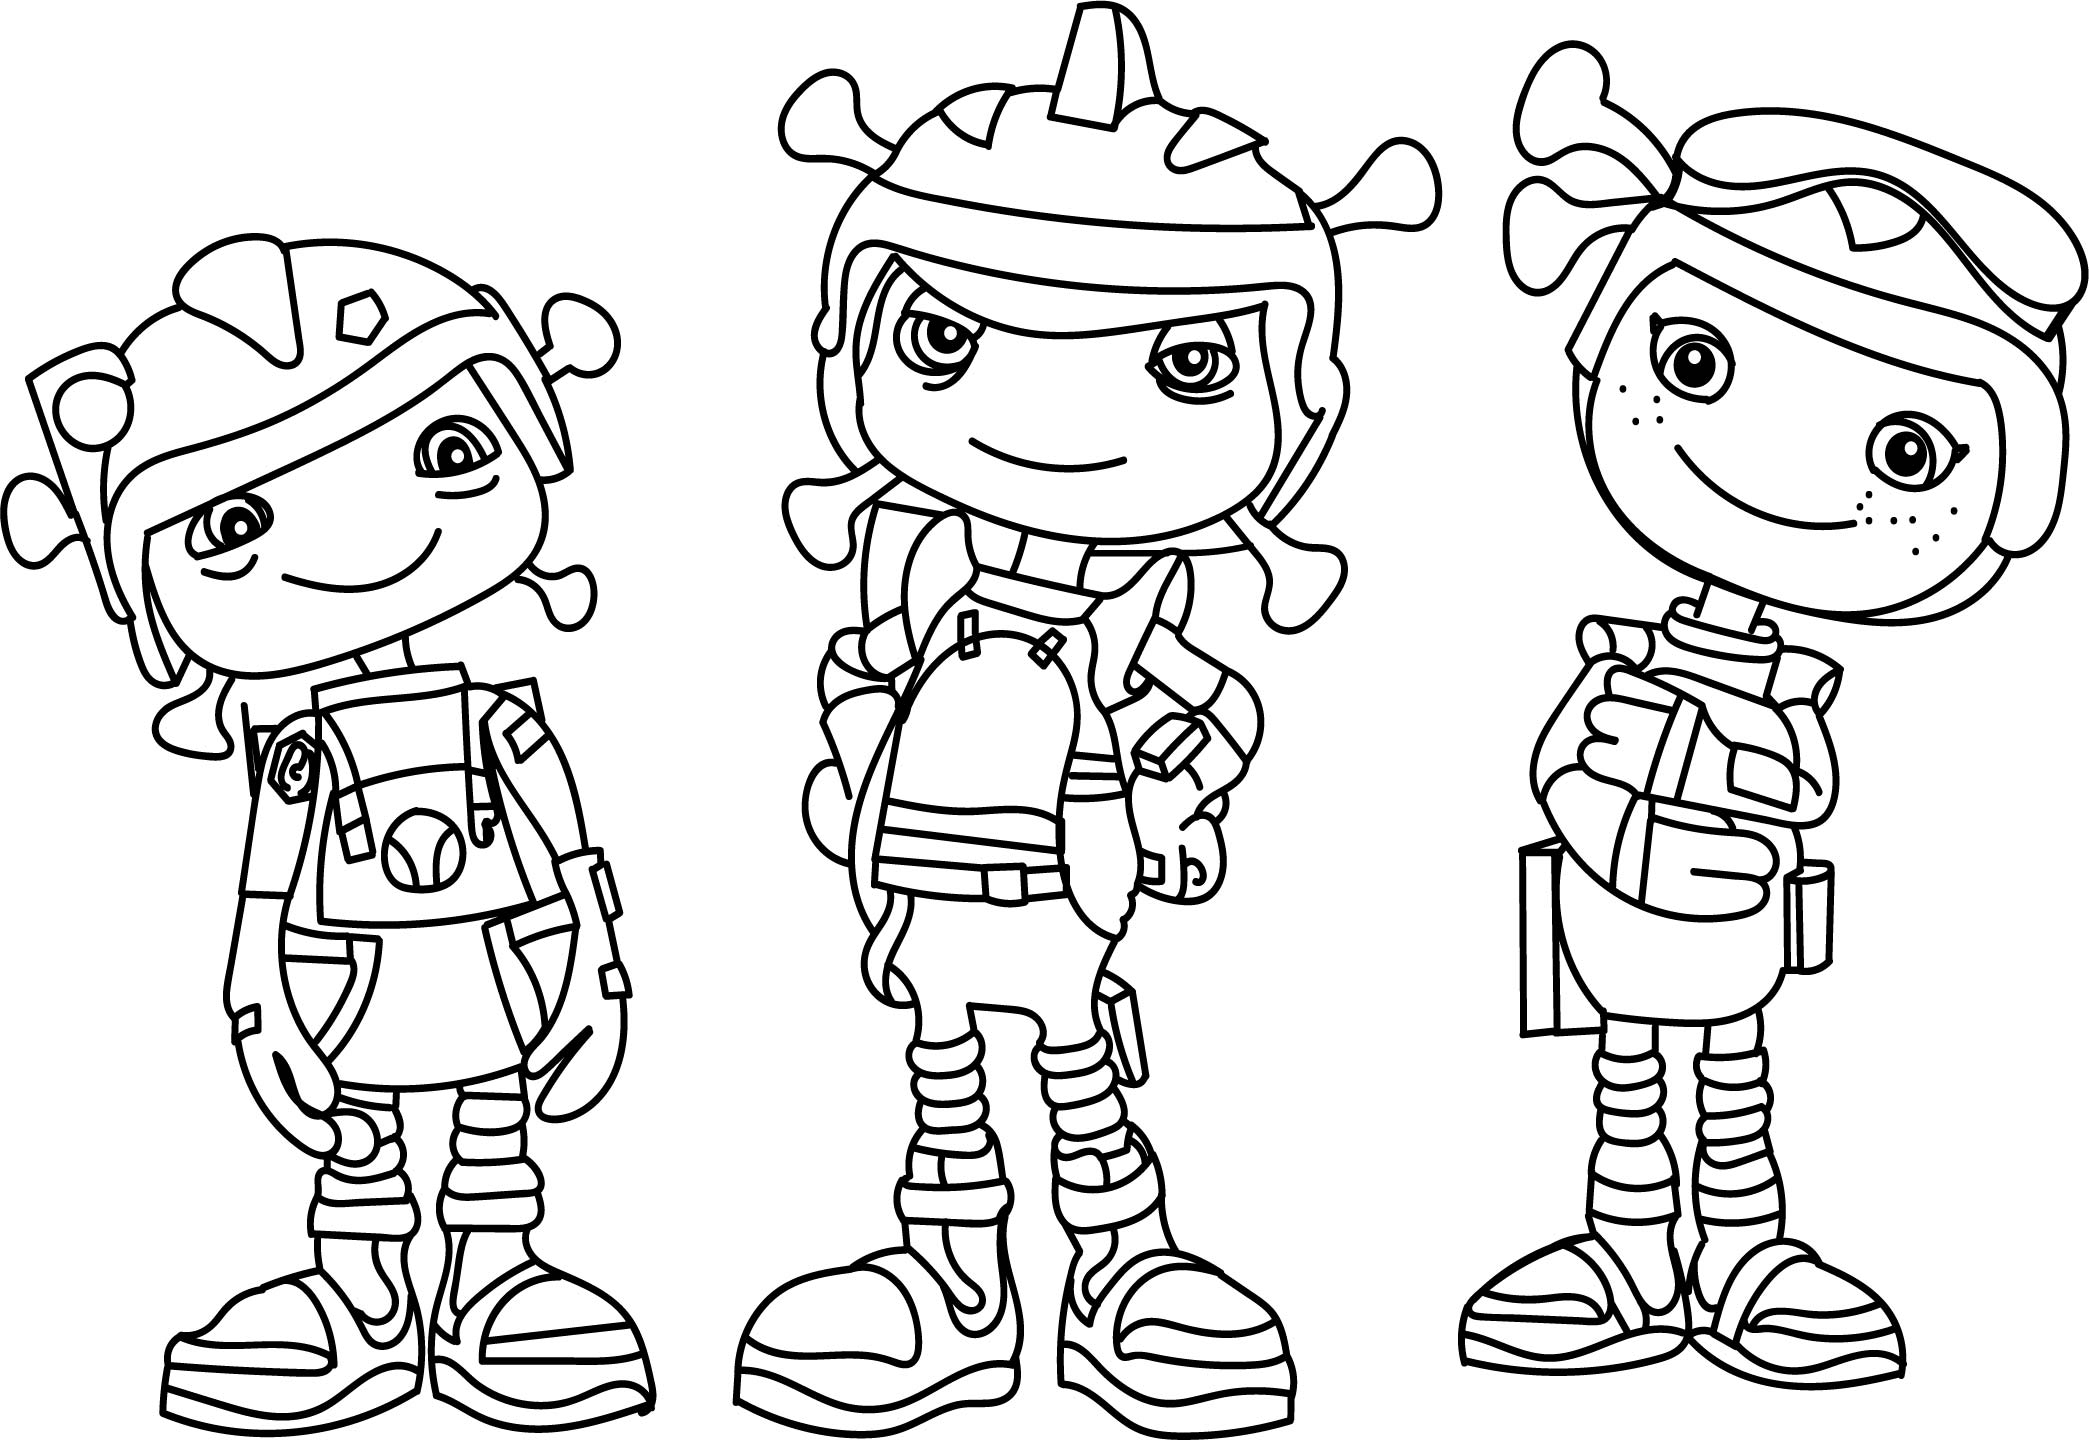 Floogals Zachary Coloring Page Wecoloringpage Colouring In Pages